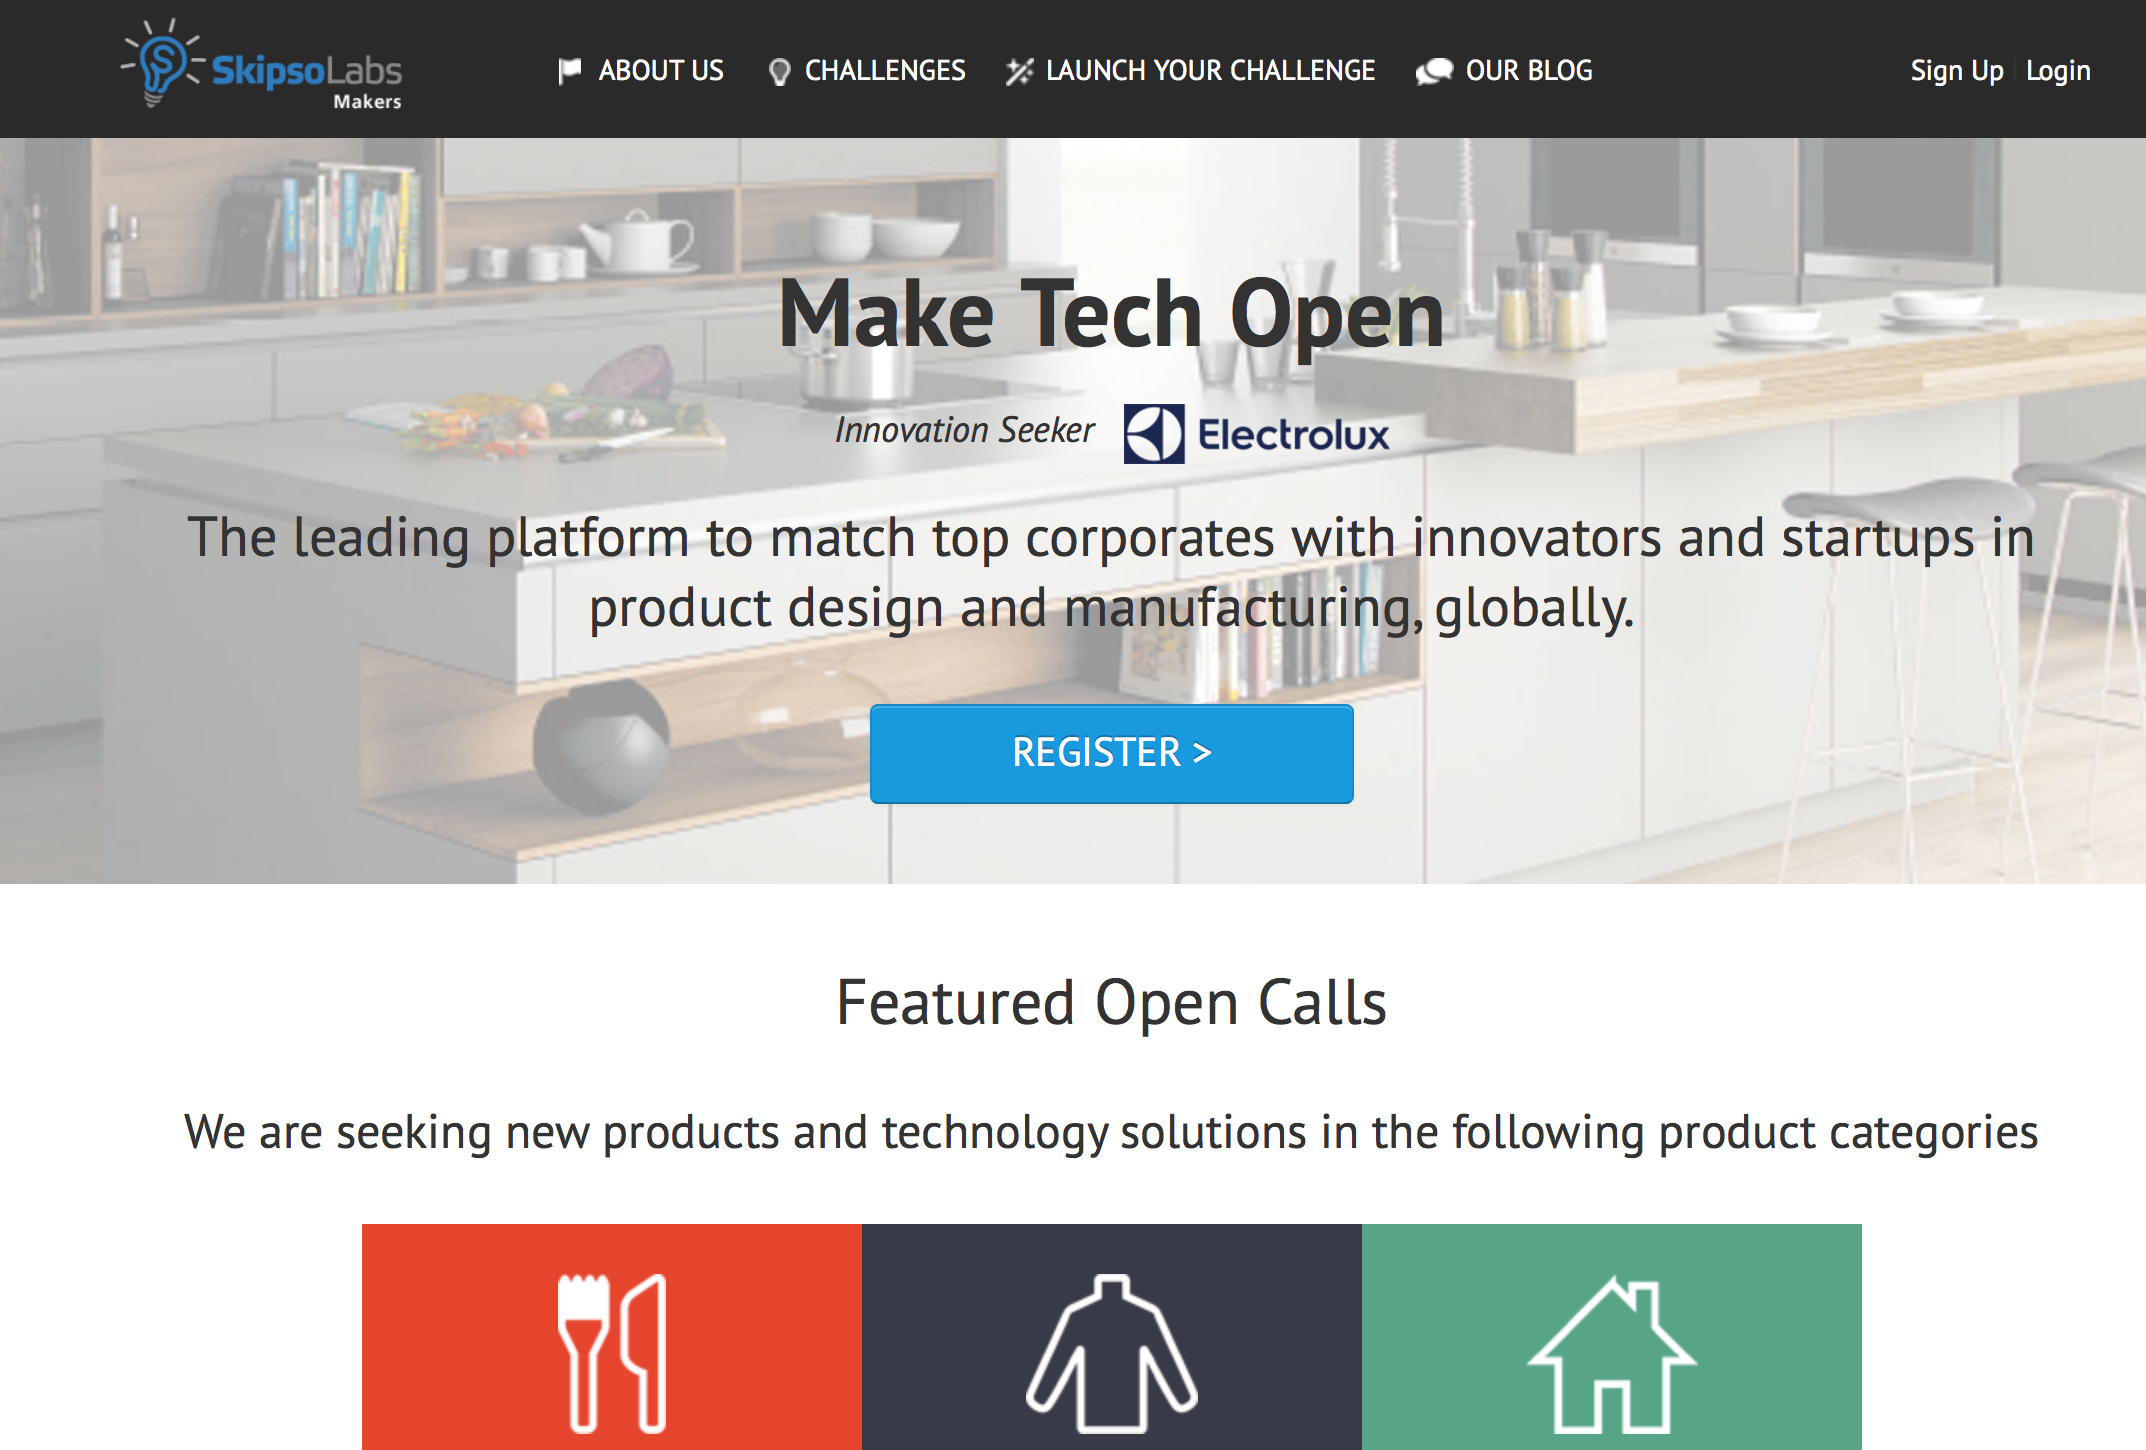 Make Tech Open